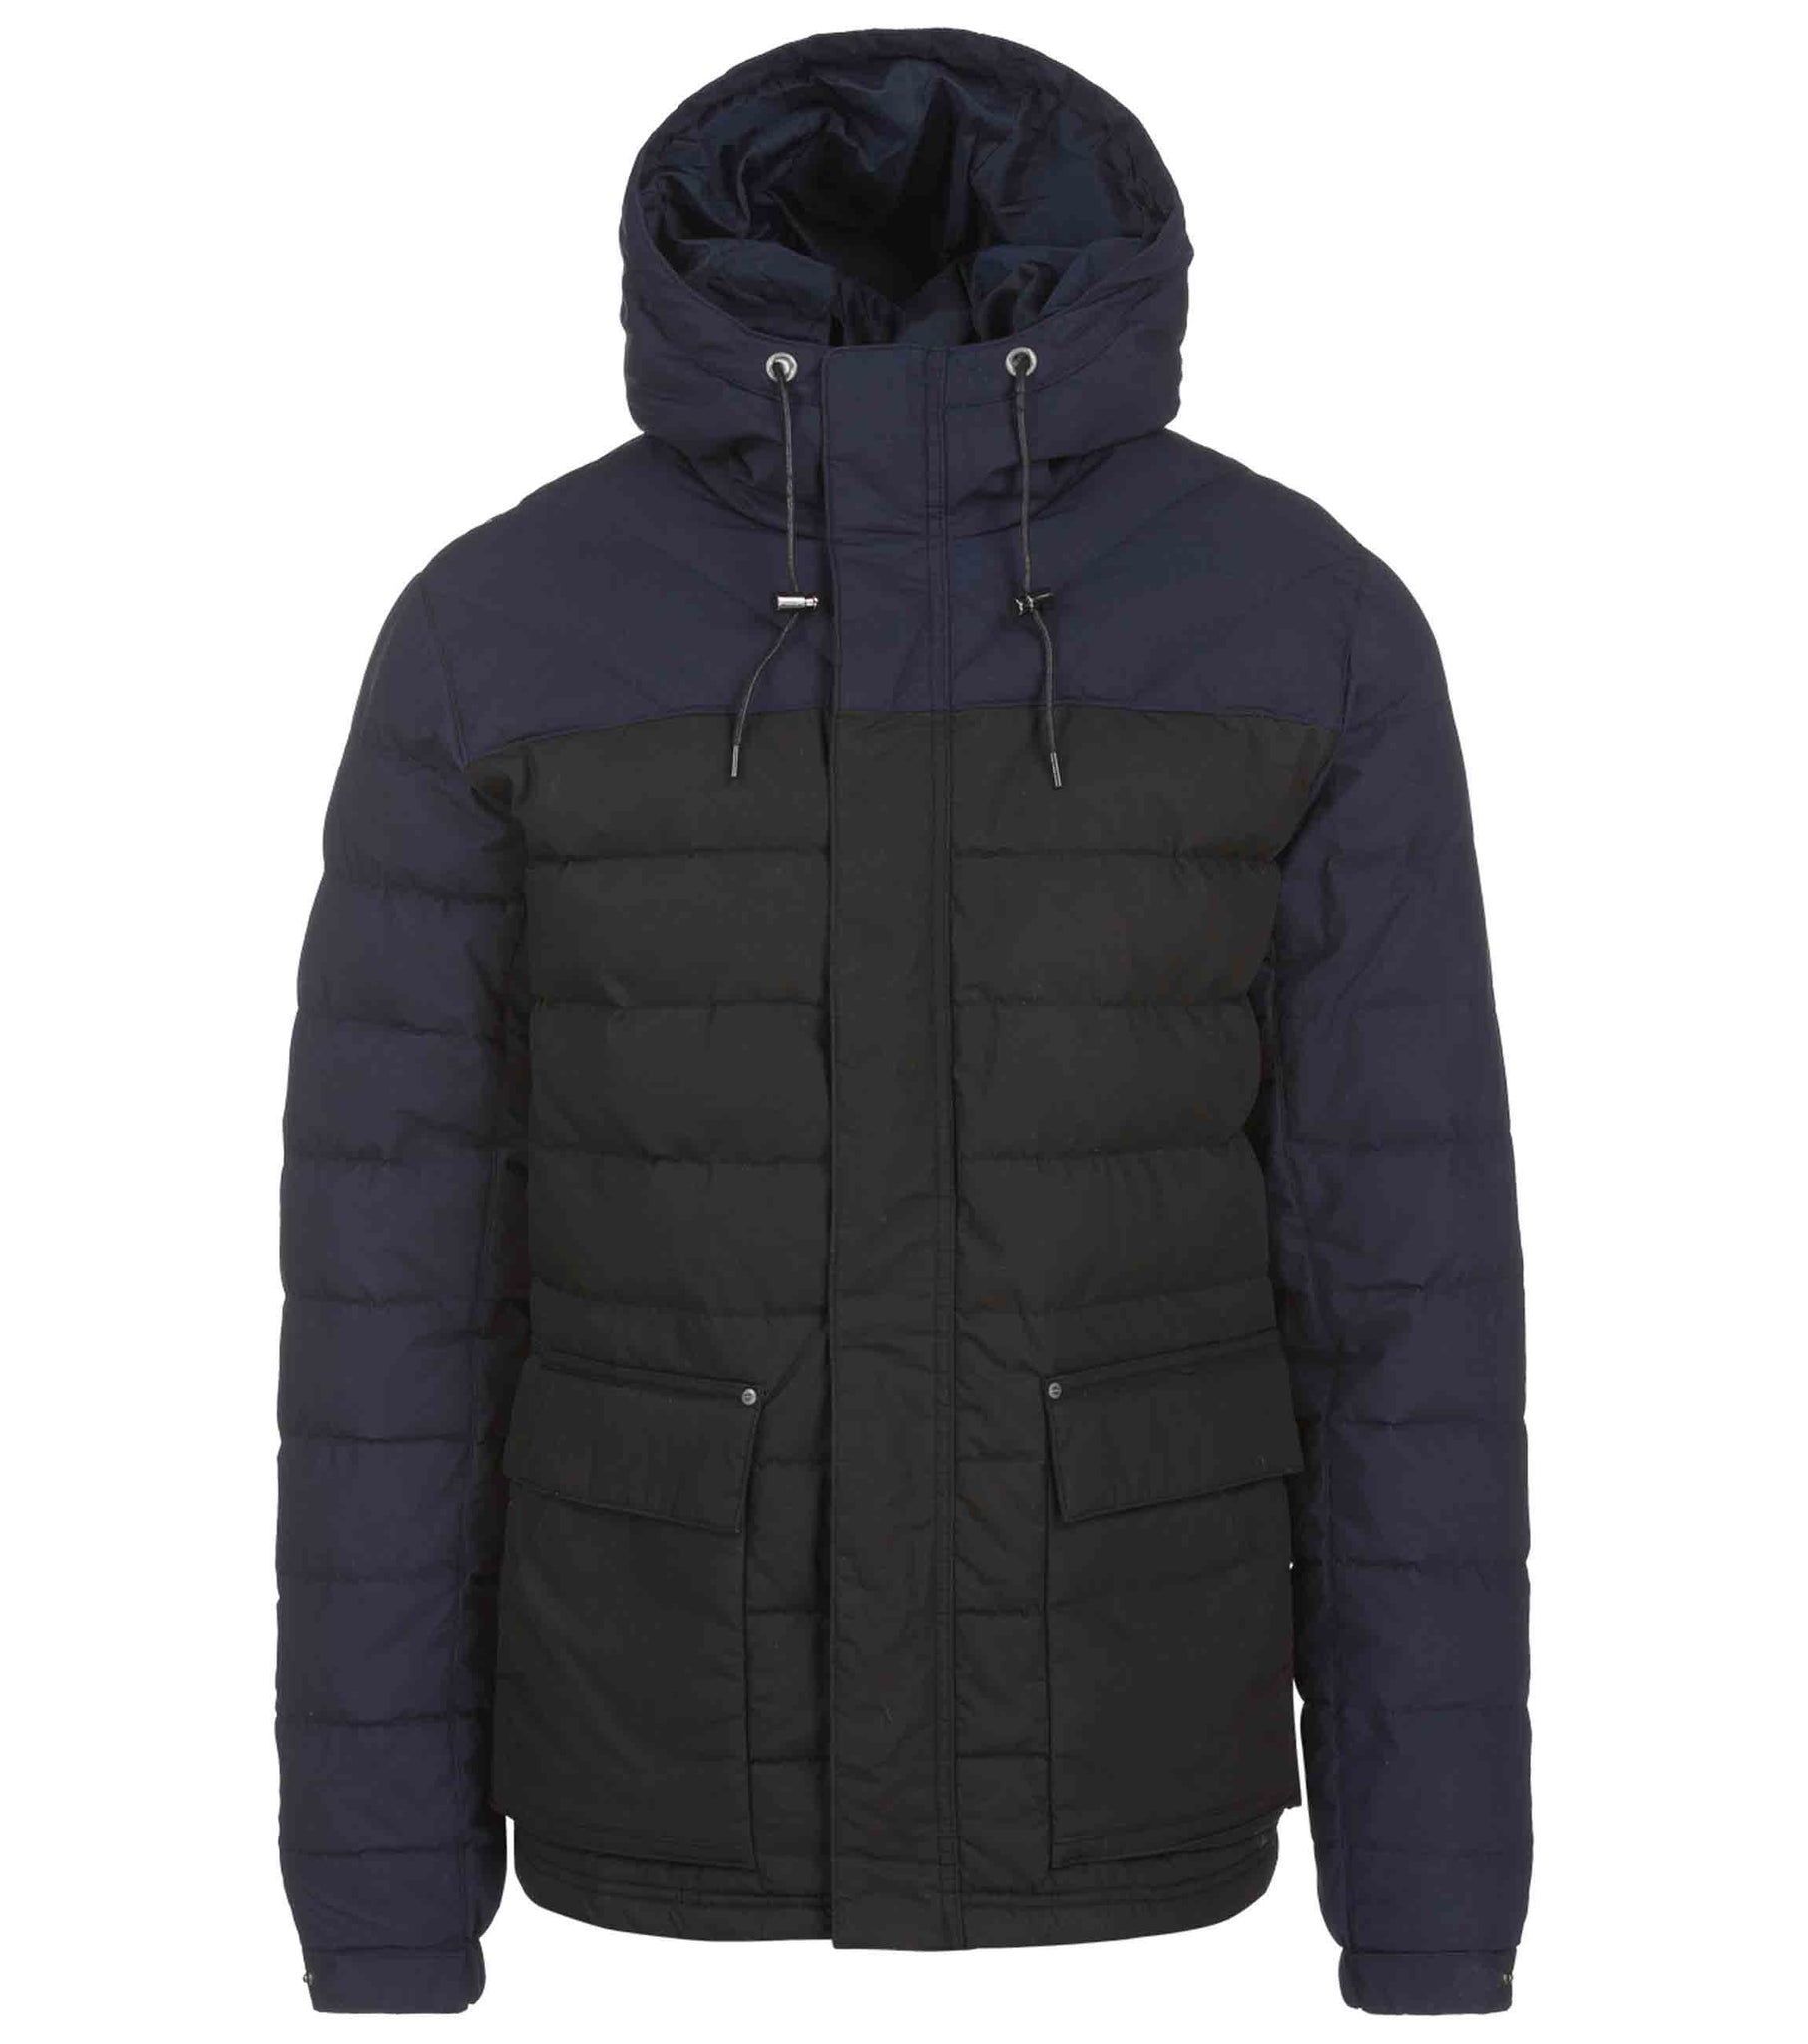 MEN'S CHARGER SNOW JACKET